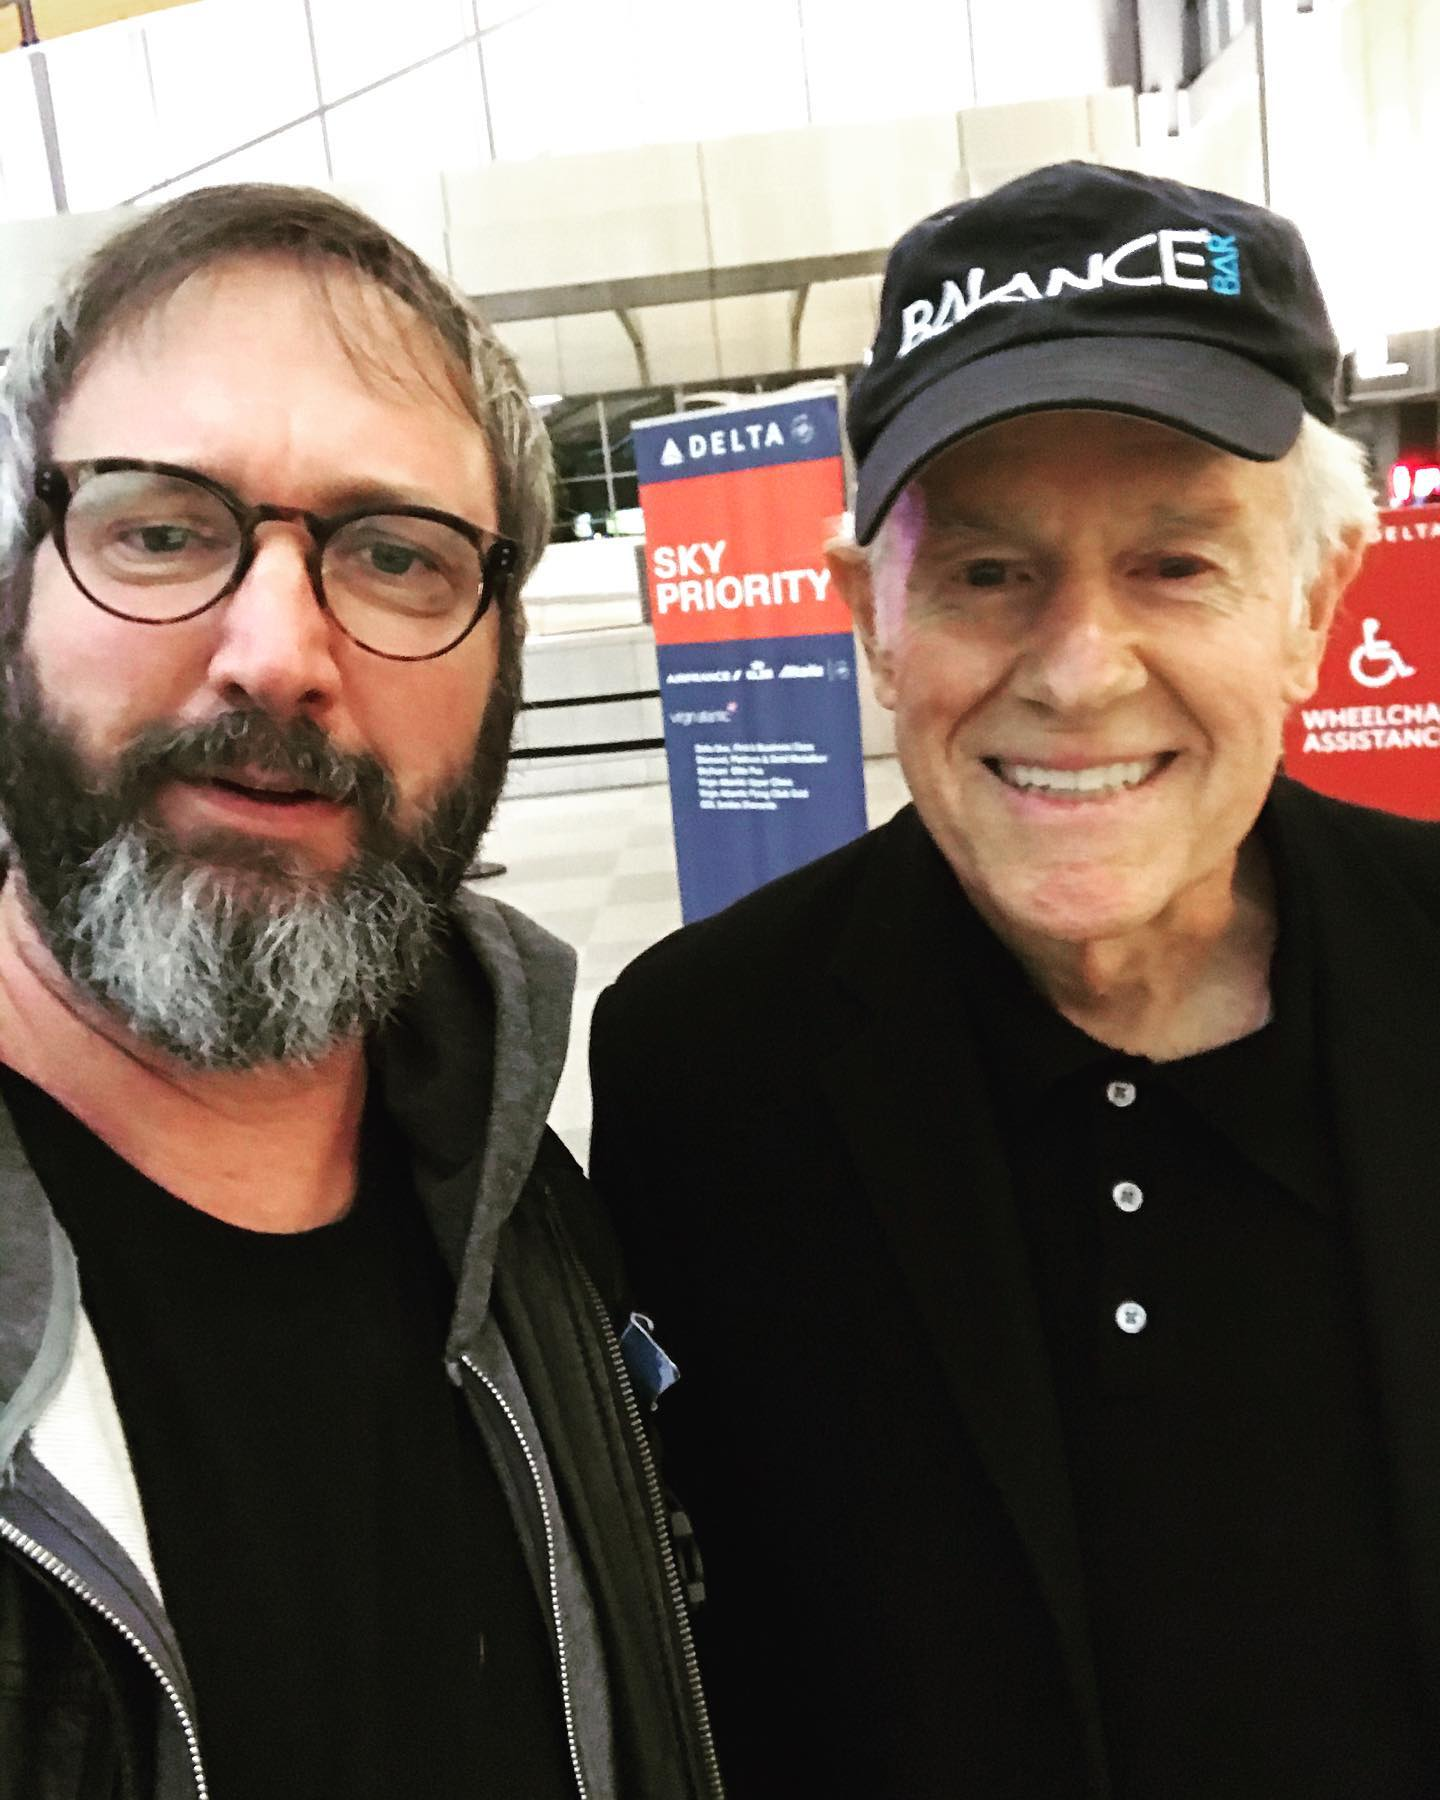 Super cool running into your comedy and acting heroes!  The legendary Mike Farrell was on my flight today and I had to say hello.  Grew up watching literally every day for 10 years.